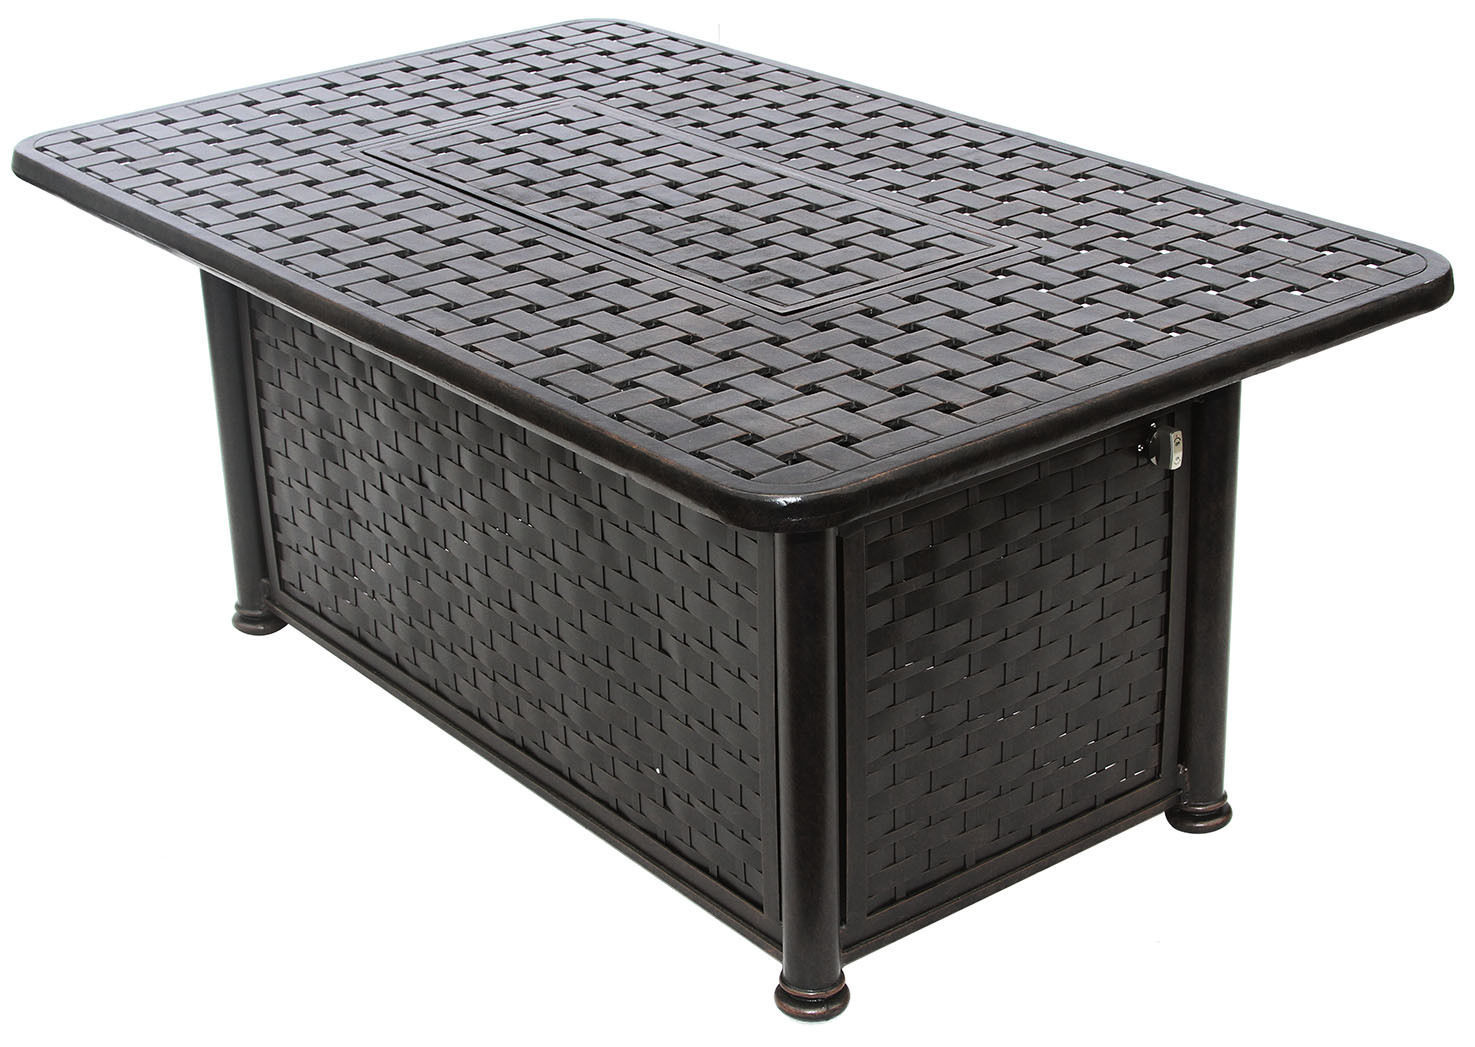 """OUTDOOR PATIO 36"""" X 58"""" RECTANGE FIRE PIT - SERIES 7000 image 2"""